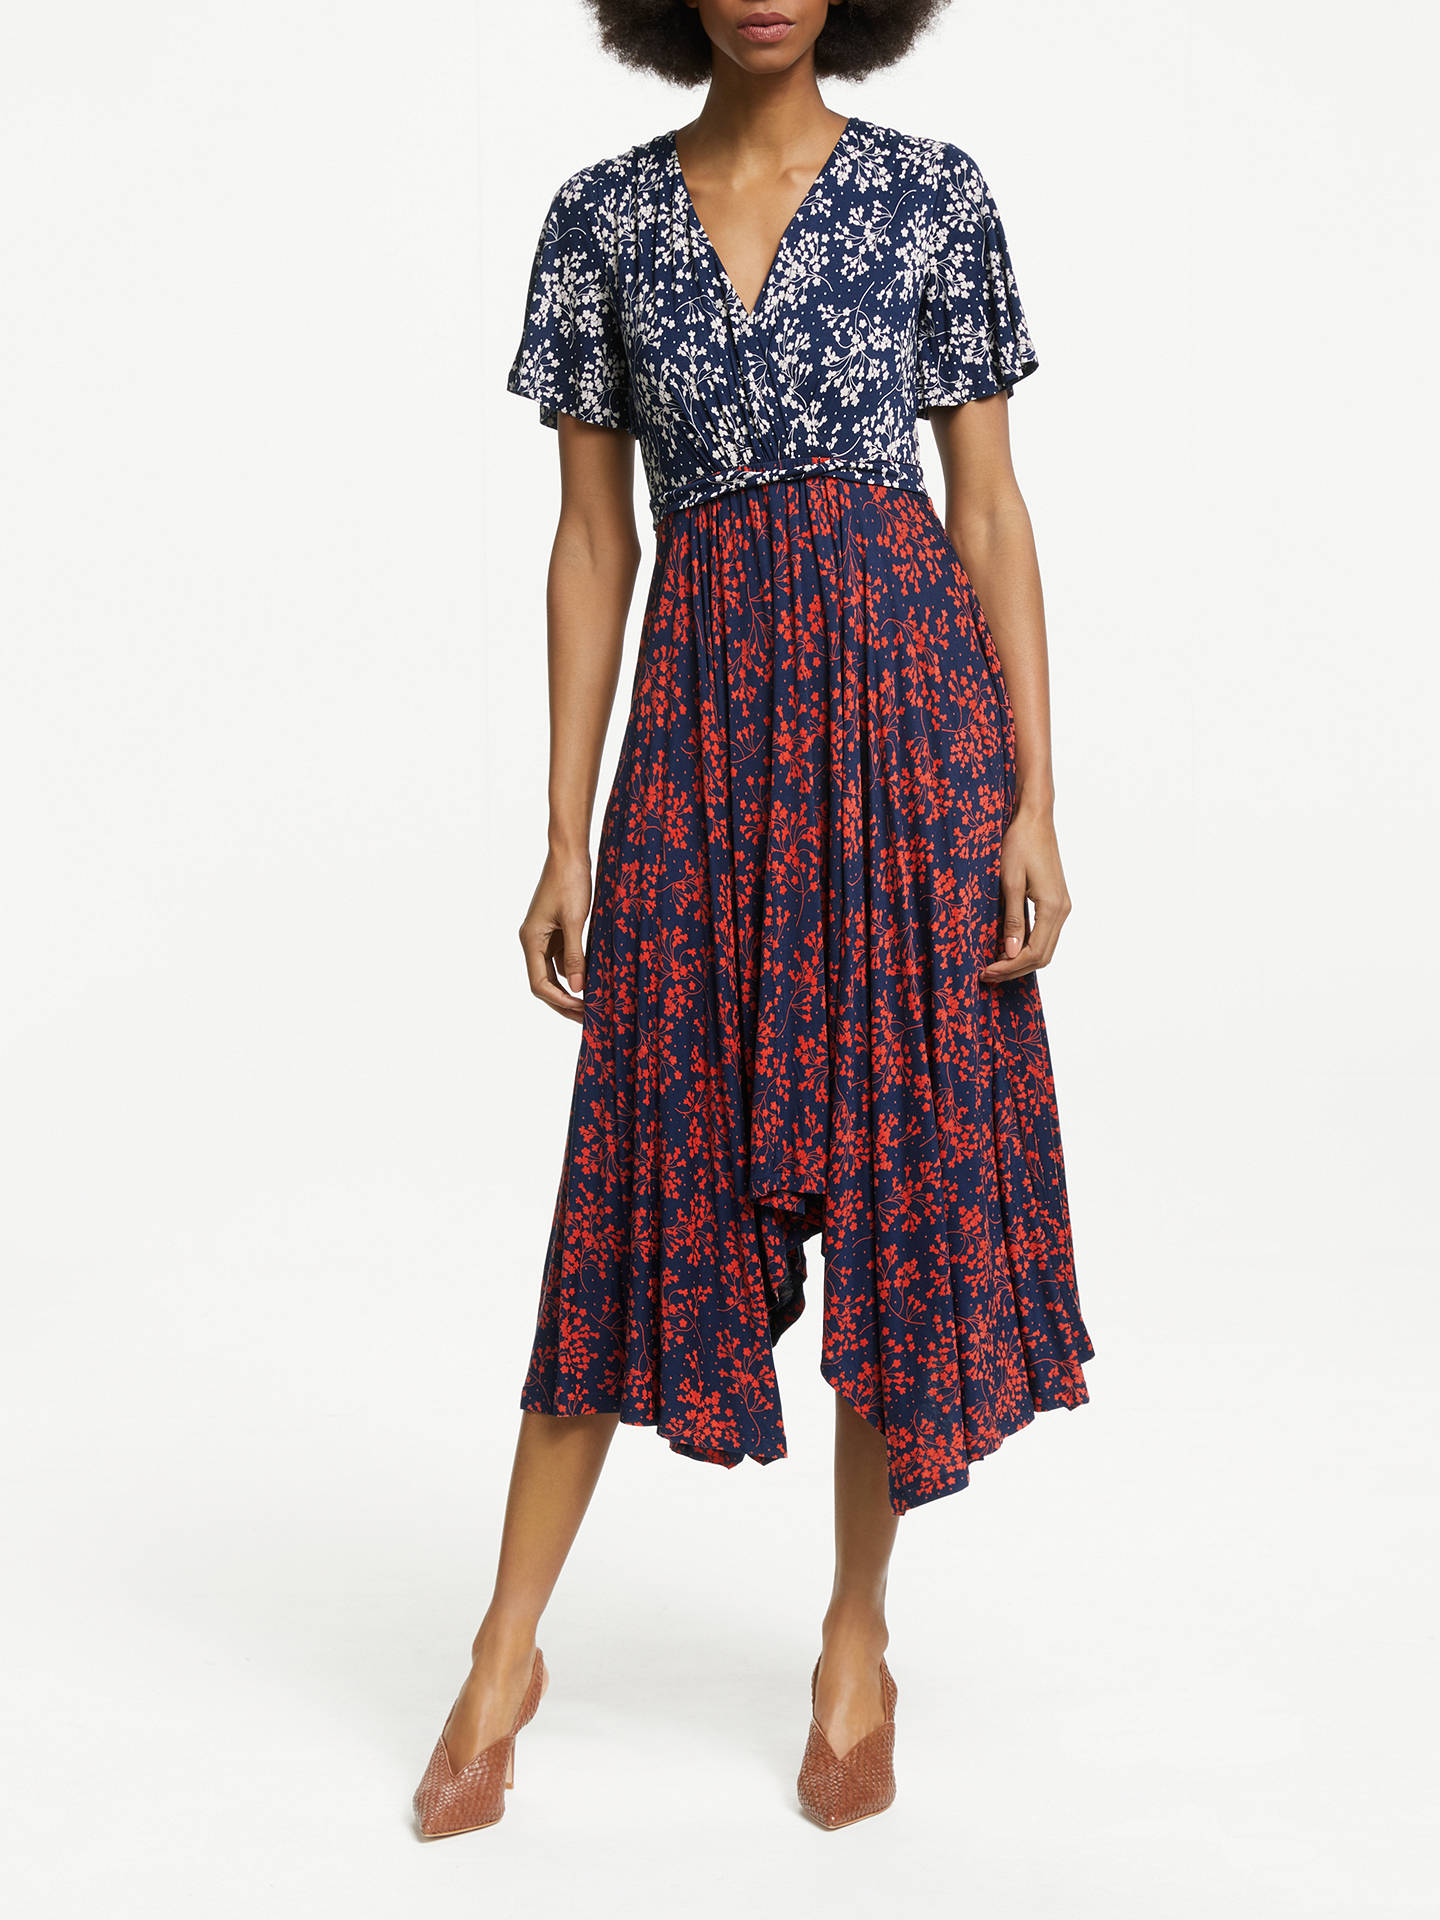 7f7e68fe32d4 Buy Boden Heather Floral Midi Dress, Navy Bloom, 10 Online at johnlewis.com  ...